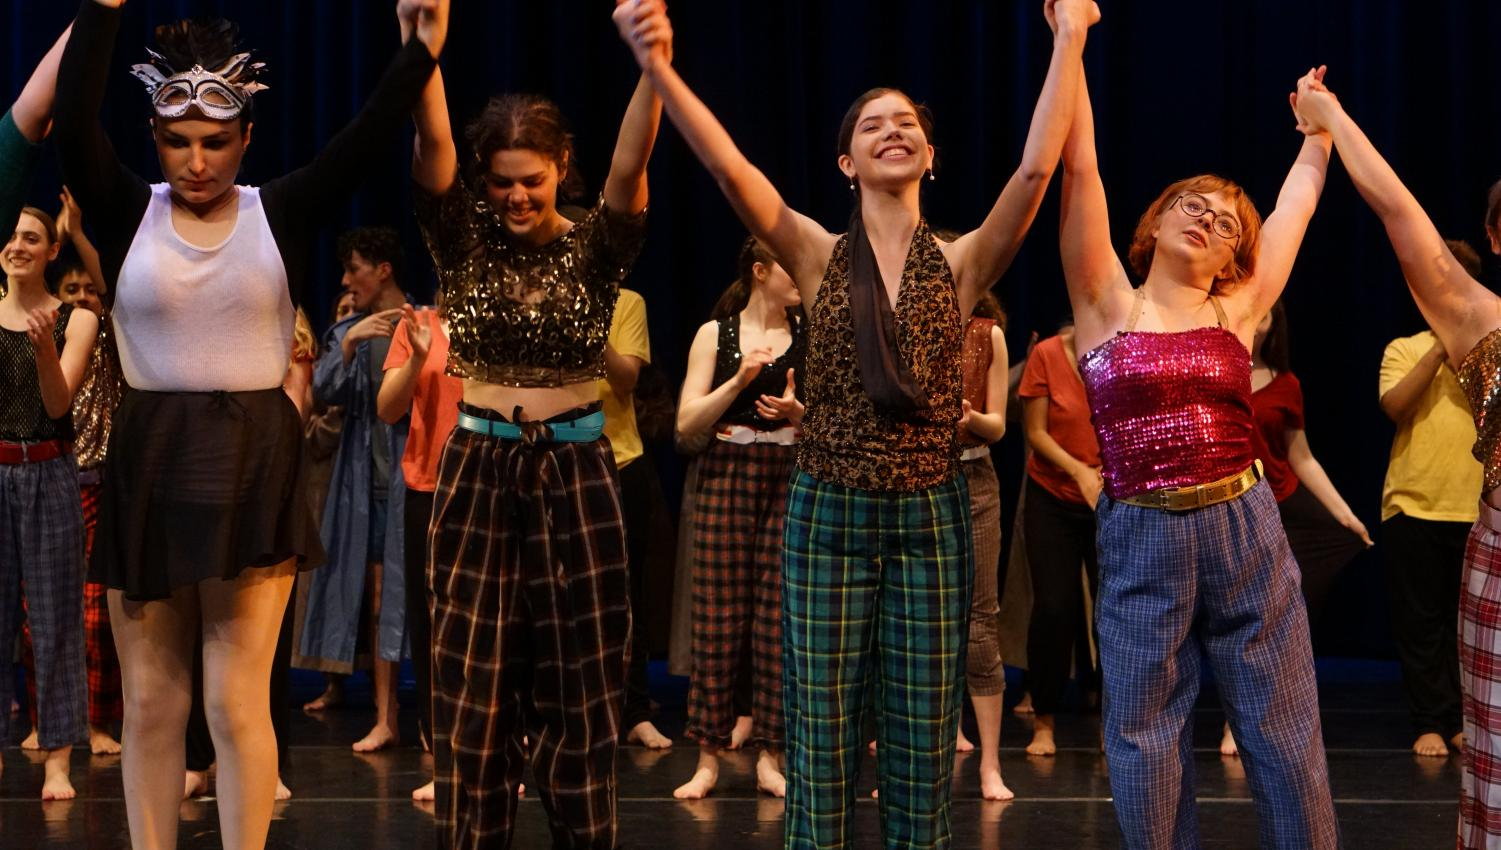 Beatrix Jackman, Anna Marceau, Hannah Hufford and Chloe Shields take their final bows after the Friday night performance of Momentum, the McCallum Youth Dance Company spring concert, at the MAC.